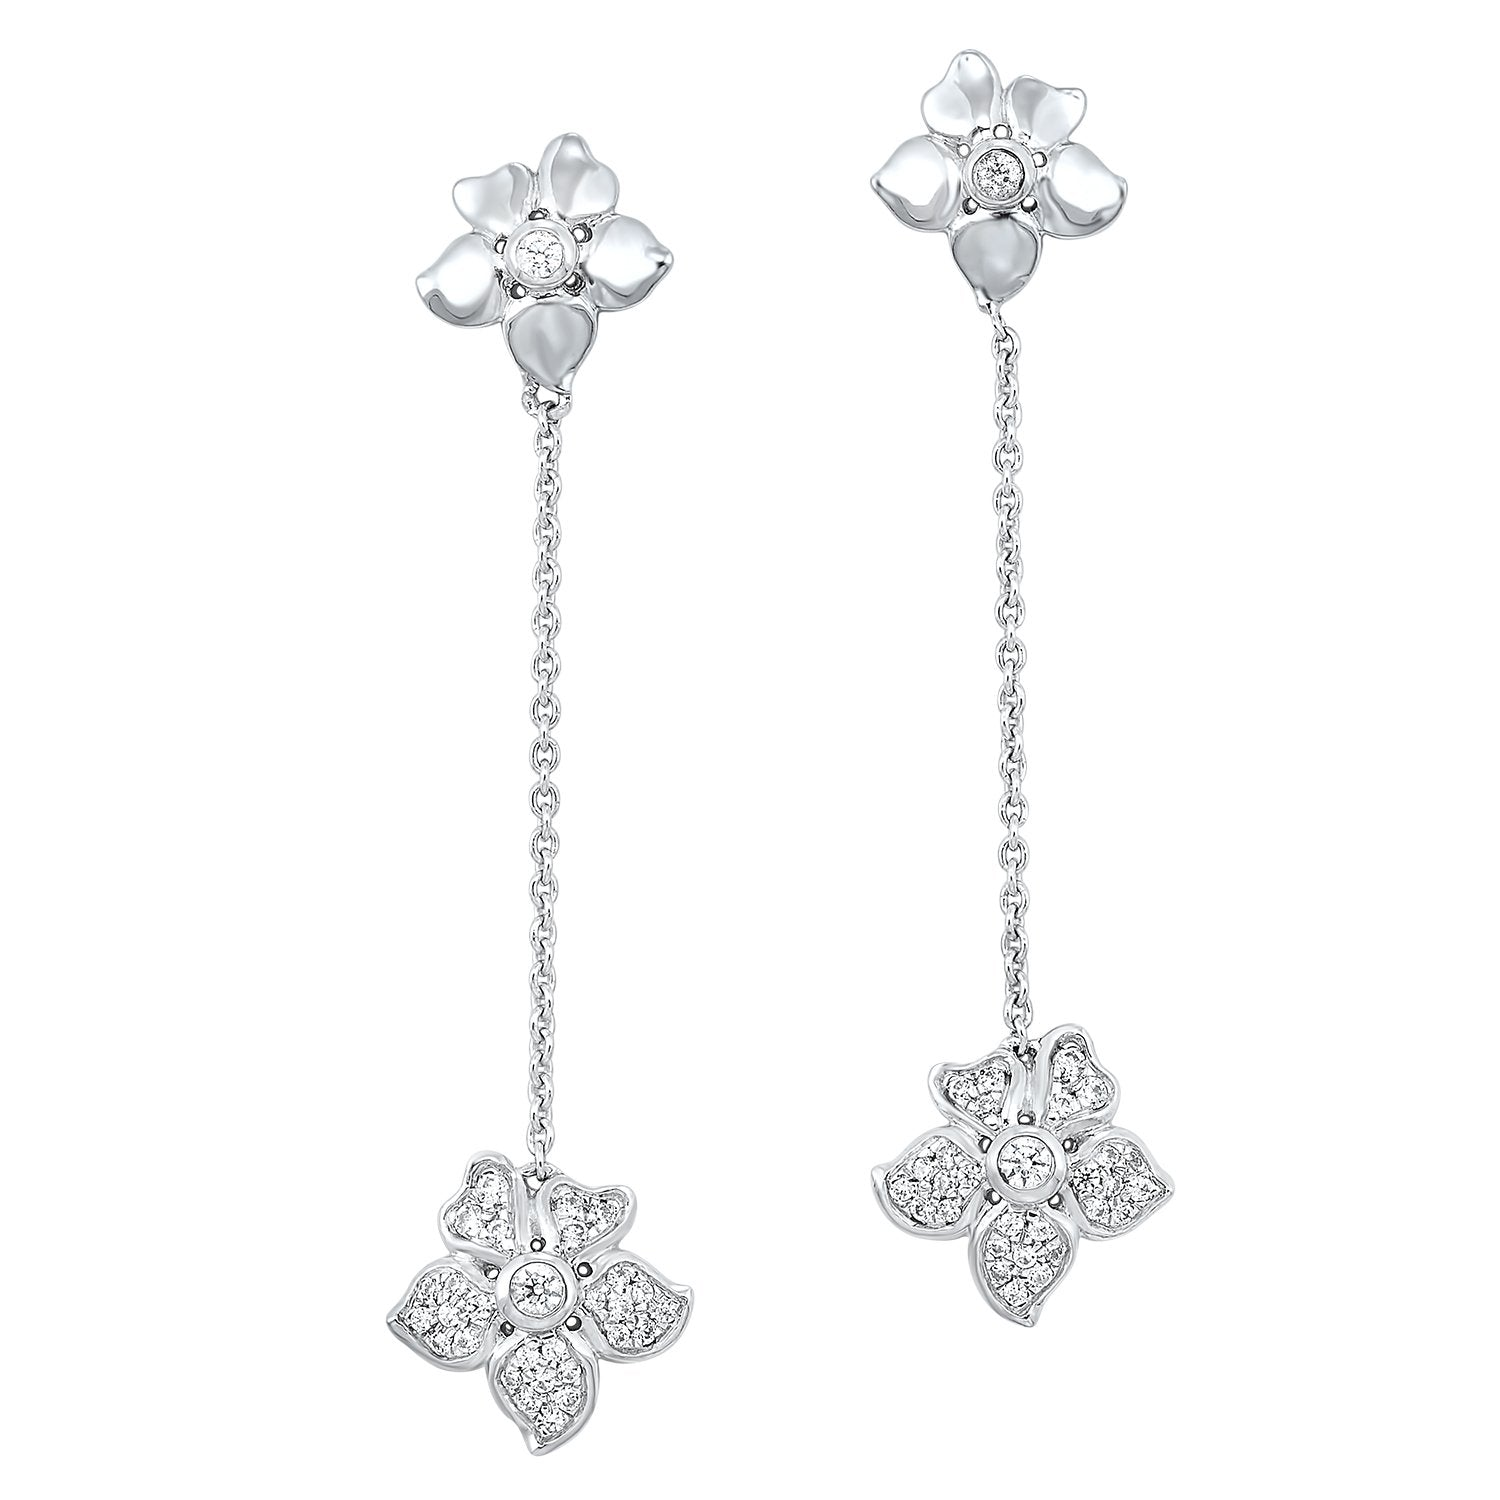 10KT White Gold Flower Earrings 1/4 CTW